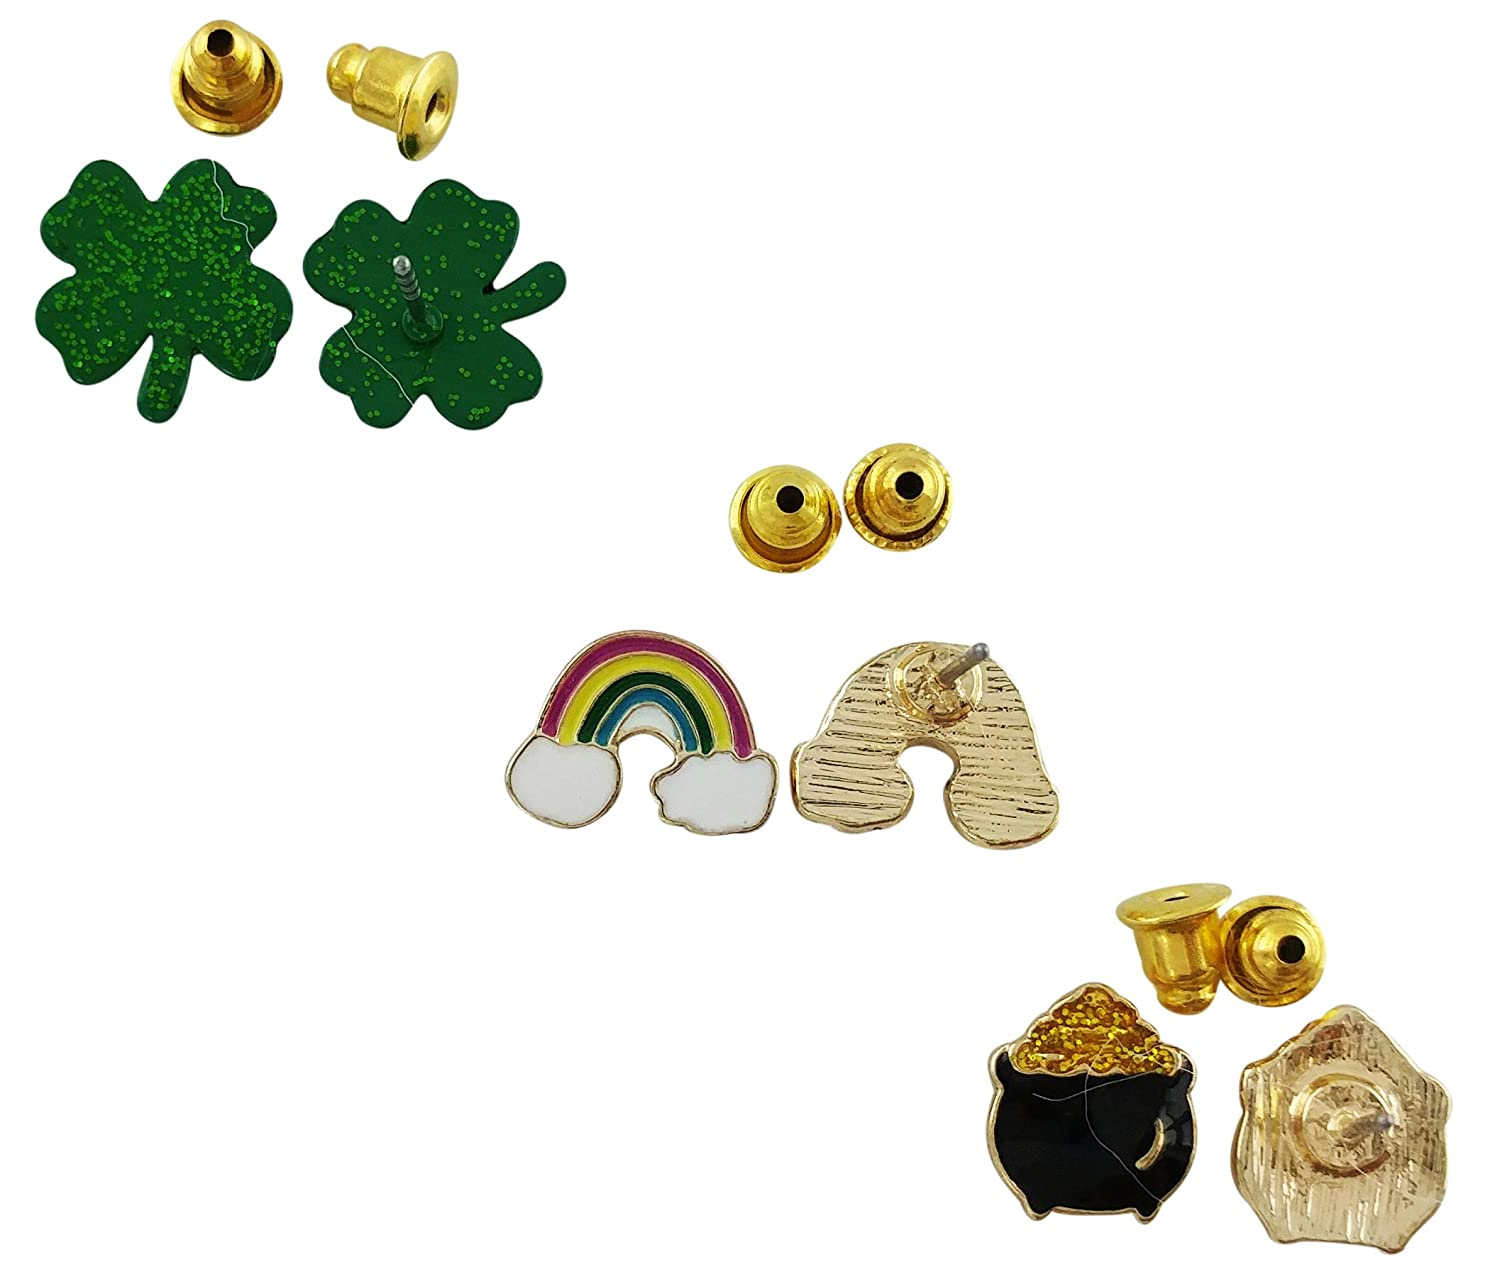 Fashion Jewelry Set of Three Irish Post Earrings Leprechaun Pot of Gold Studs Rainbow Studs Gold Plated Earrings 4 Leaf Clover Stud